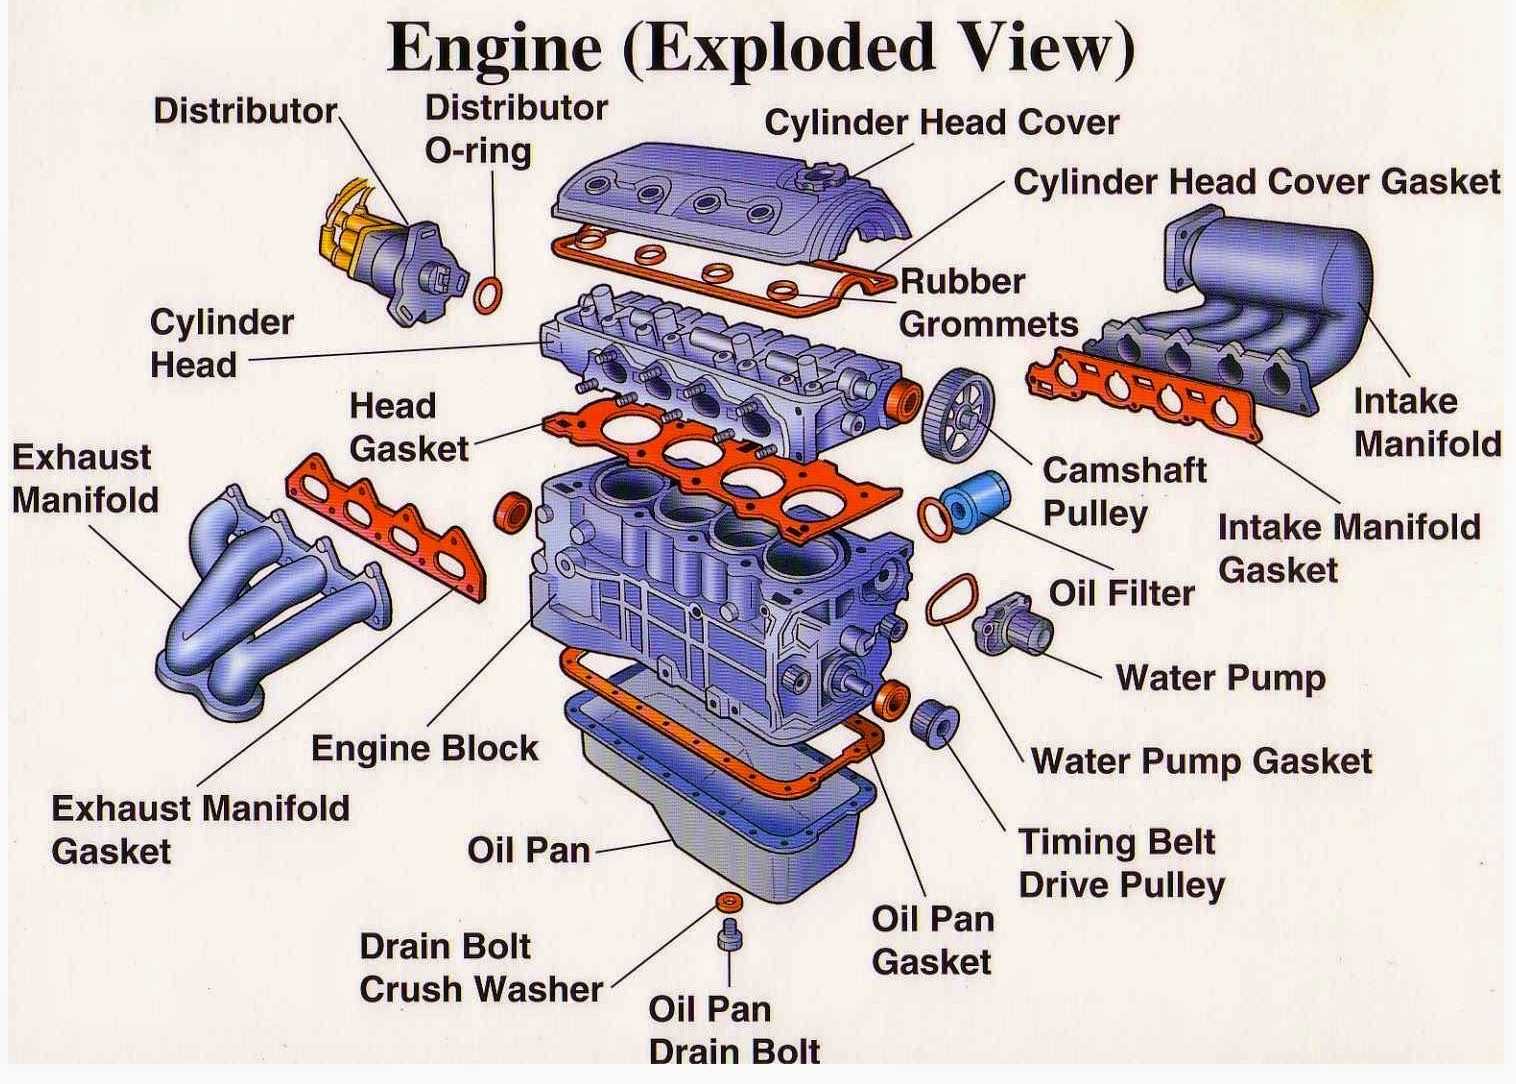 Engine Parts (Exploded View) Engineering, Automotive